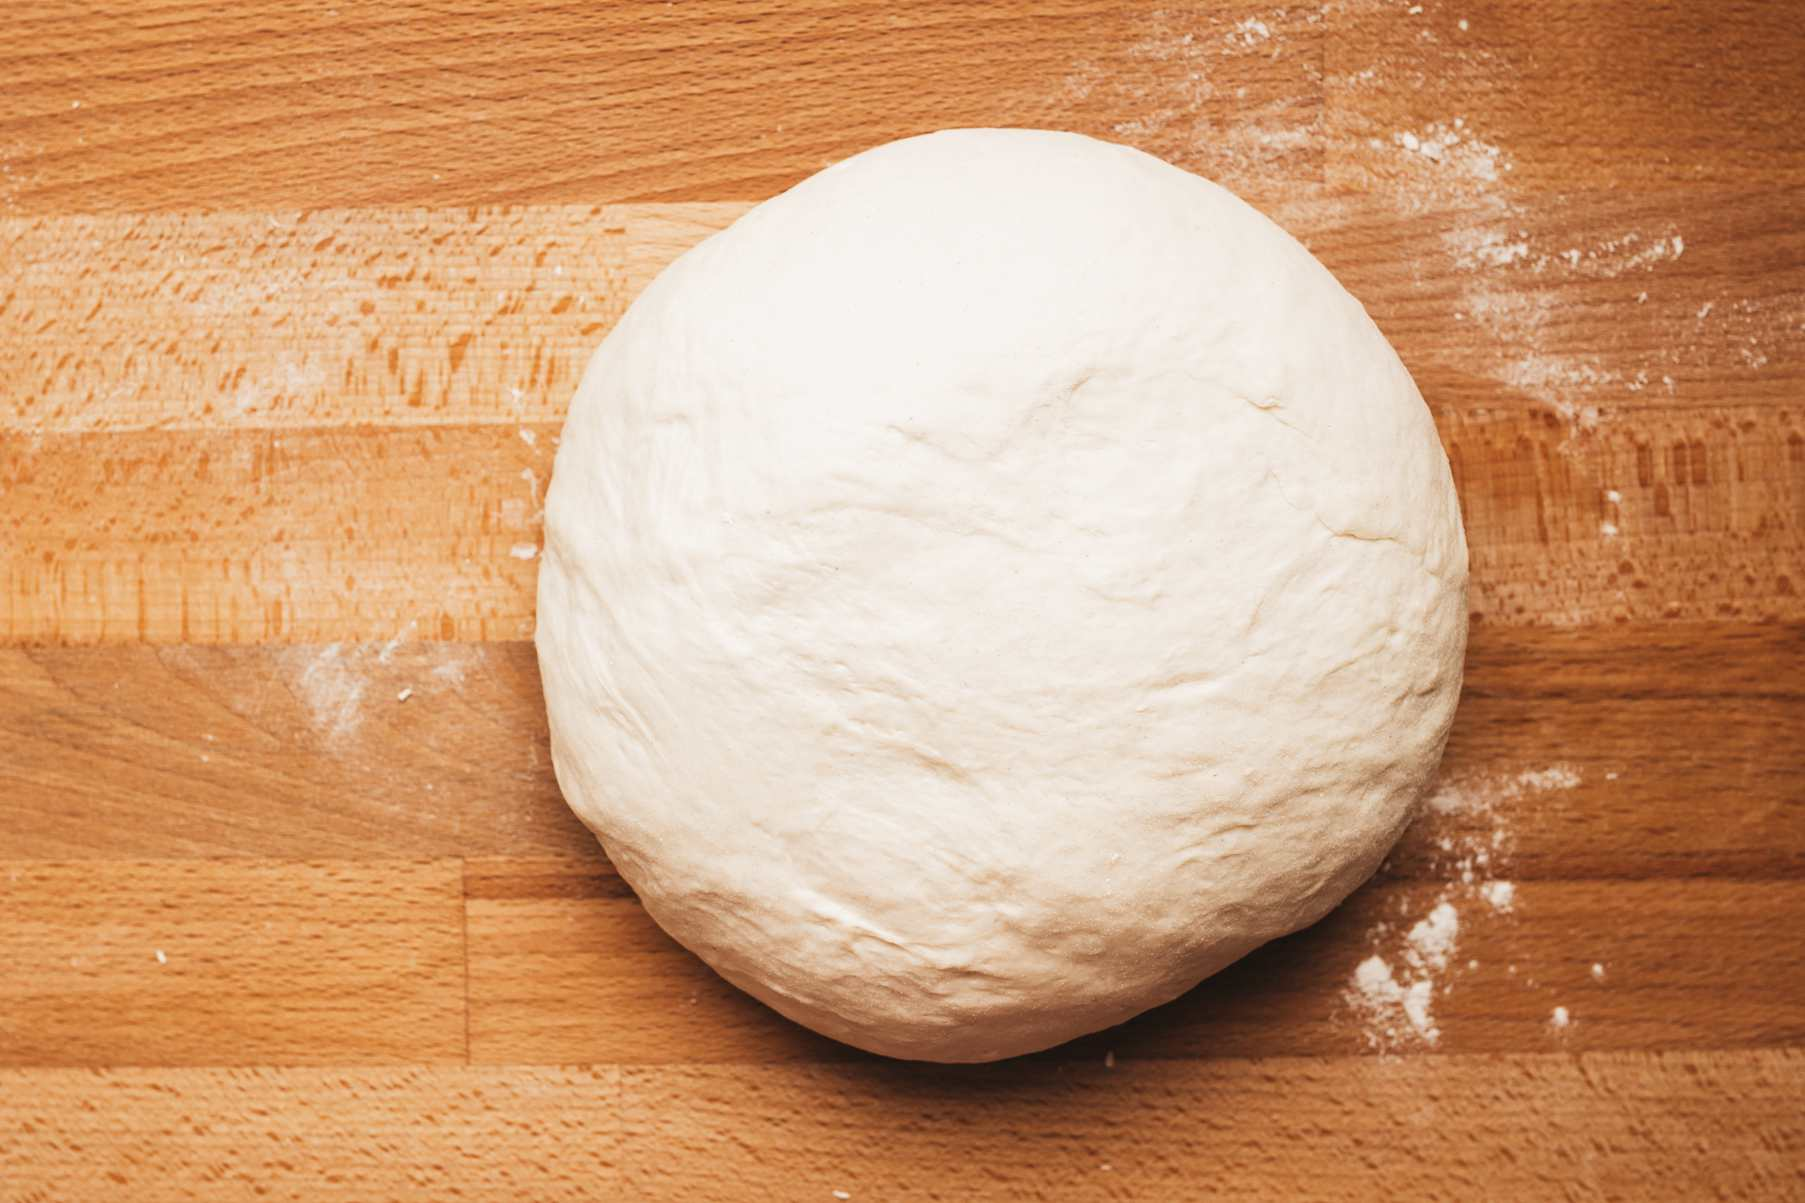 Give dough a quick knead